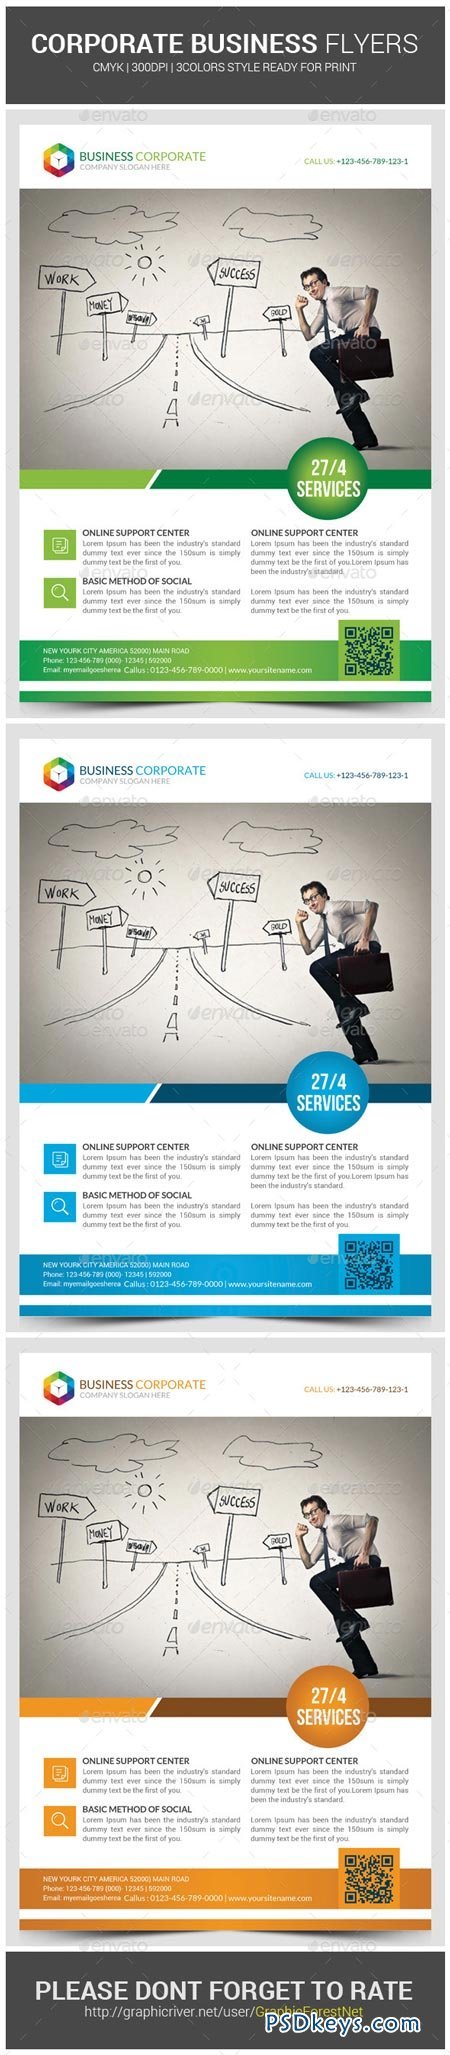 Corporate Business Flyer Template 9105768